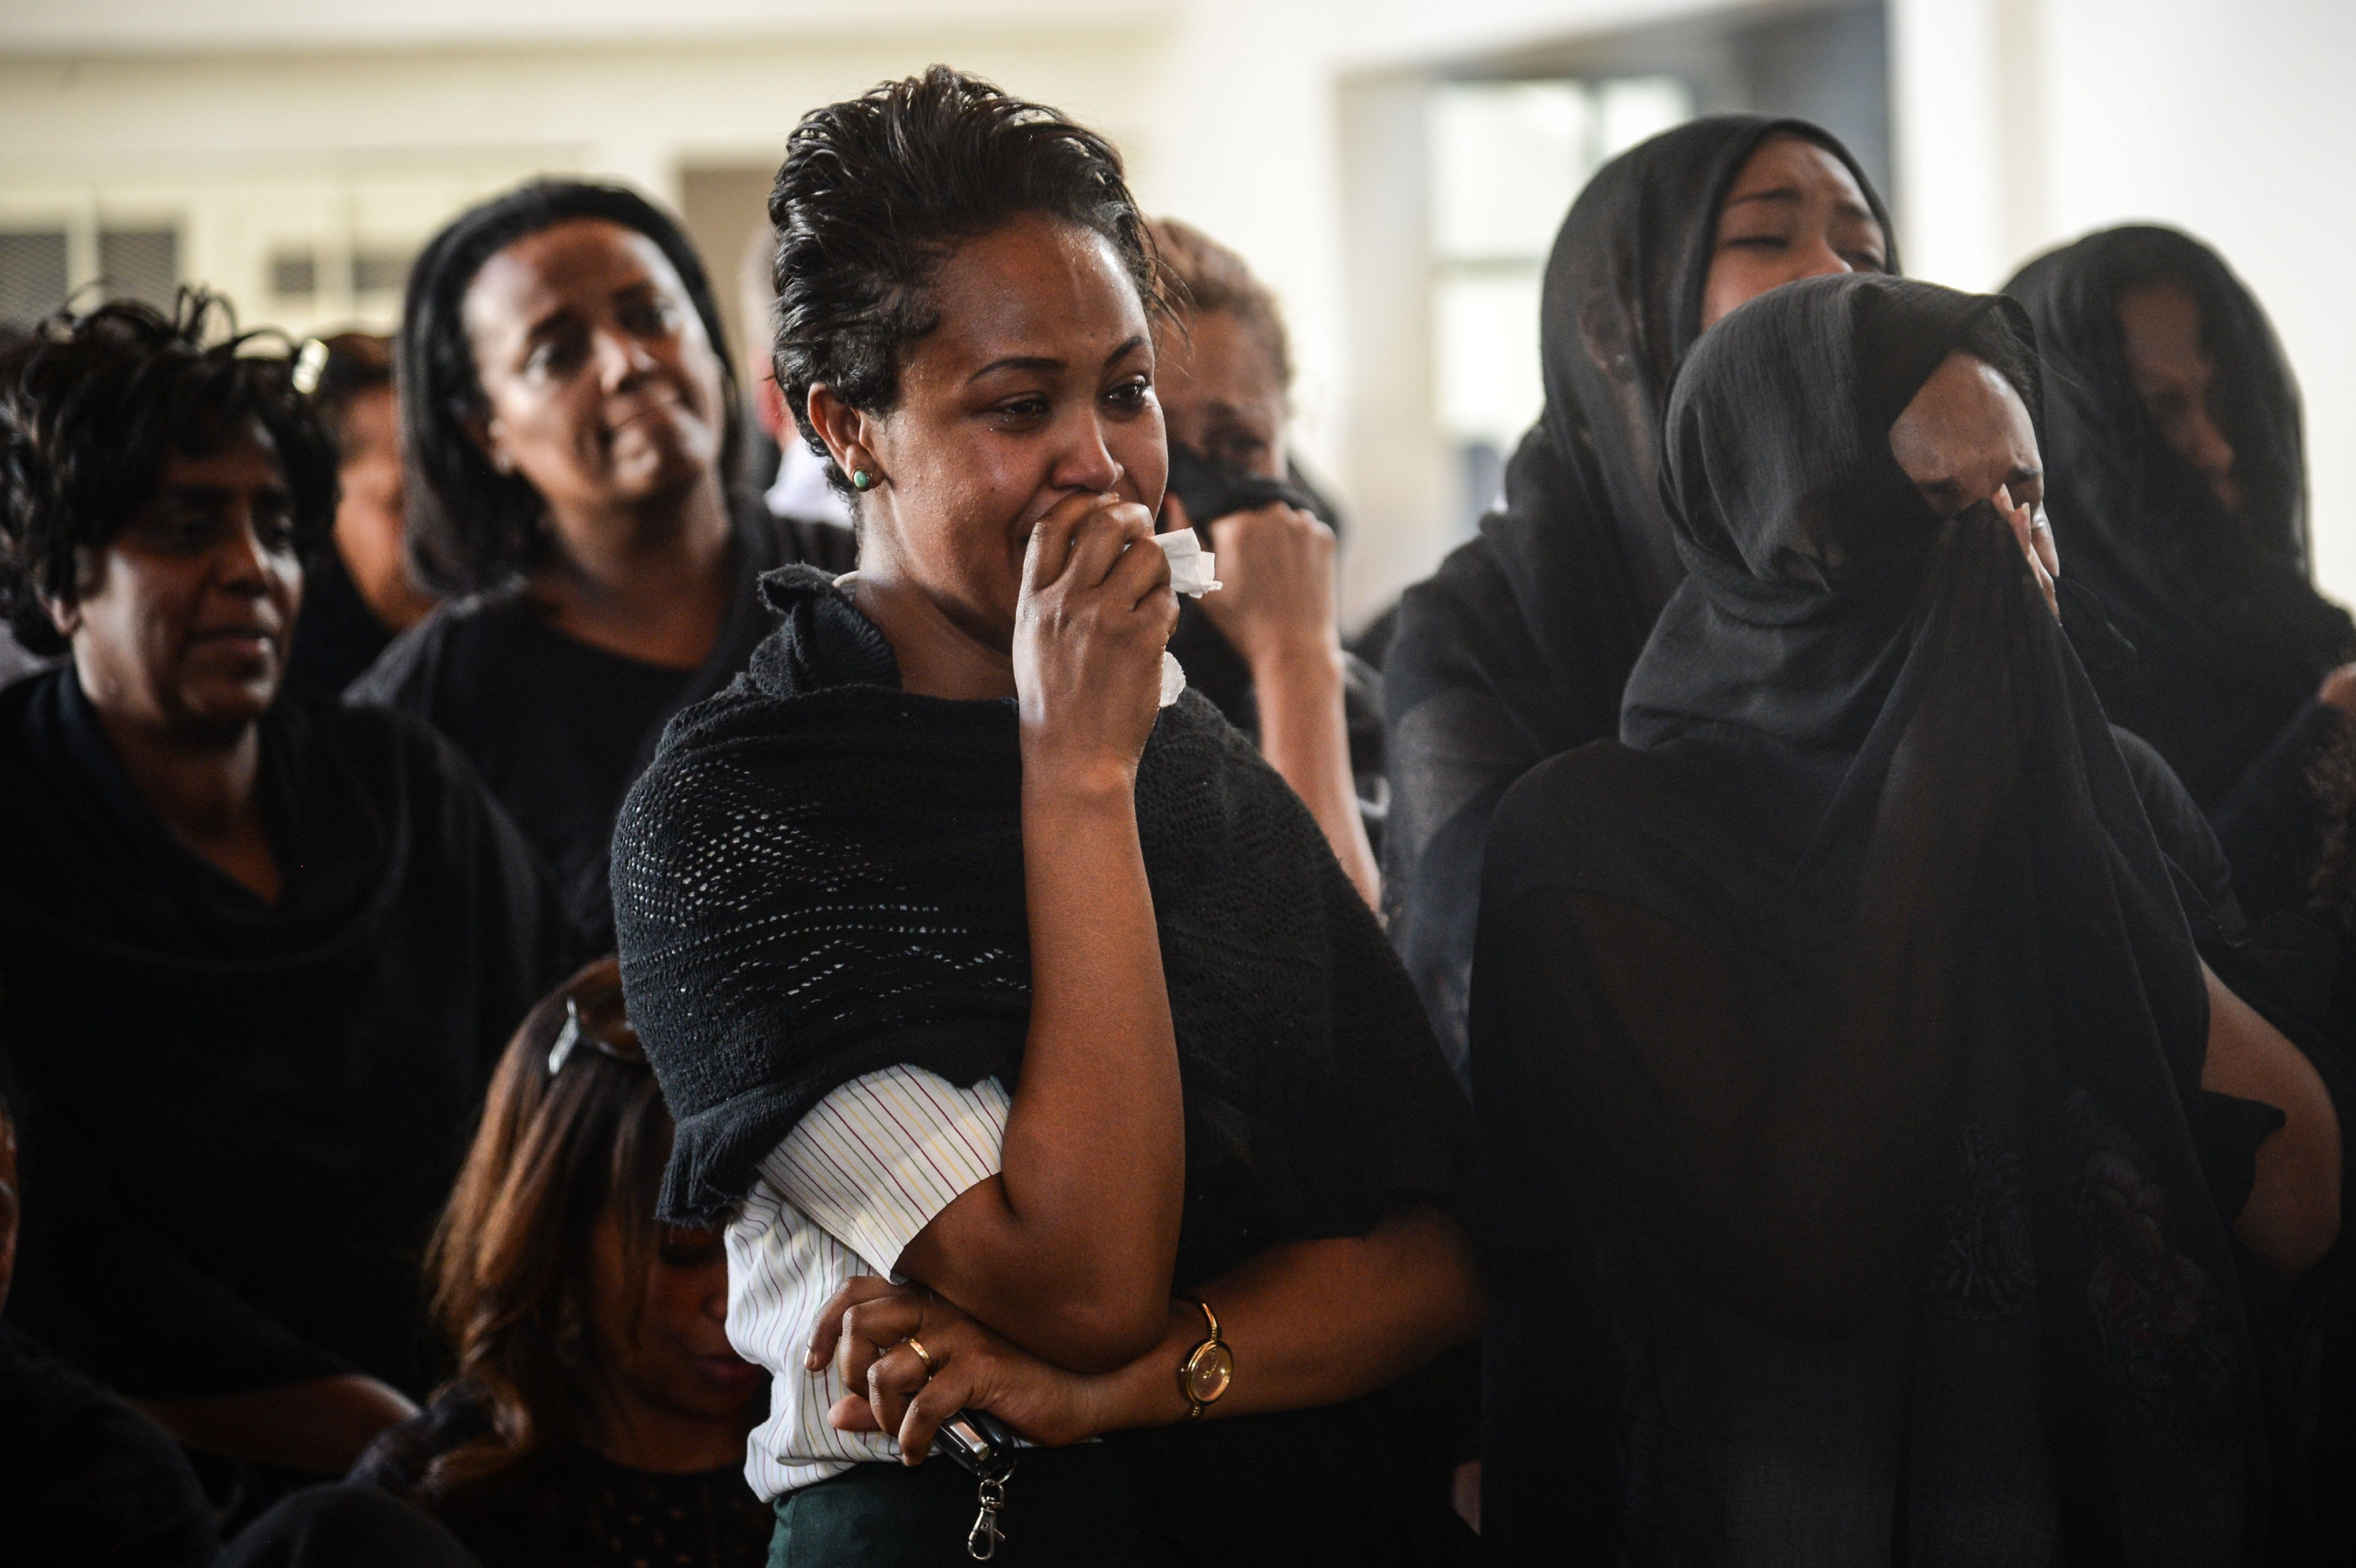 Women mourn during a memorial ceremony for the seven crew members who died in the Ethiopian Airlines accident at the Ethiopian Pilot Association Club in Addis Ababa, Ethiopia, on March 11, 2019. - Airlines in Ethiopia, China and Indonesia have grounded their Boeing 737 MAX 8 jets on March 11, as investigators recovered the black boxes from a brand-new passenger jet that crashed outside Addis Ababa a day earlier, killing all 157 people on board. (Photo by - / AFP)